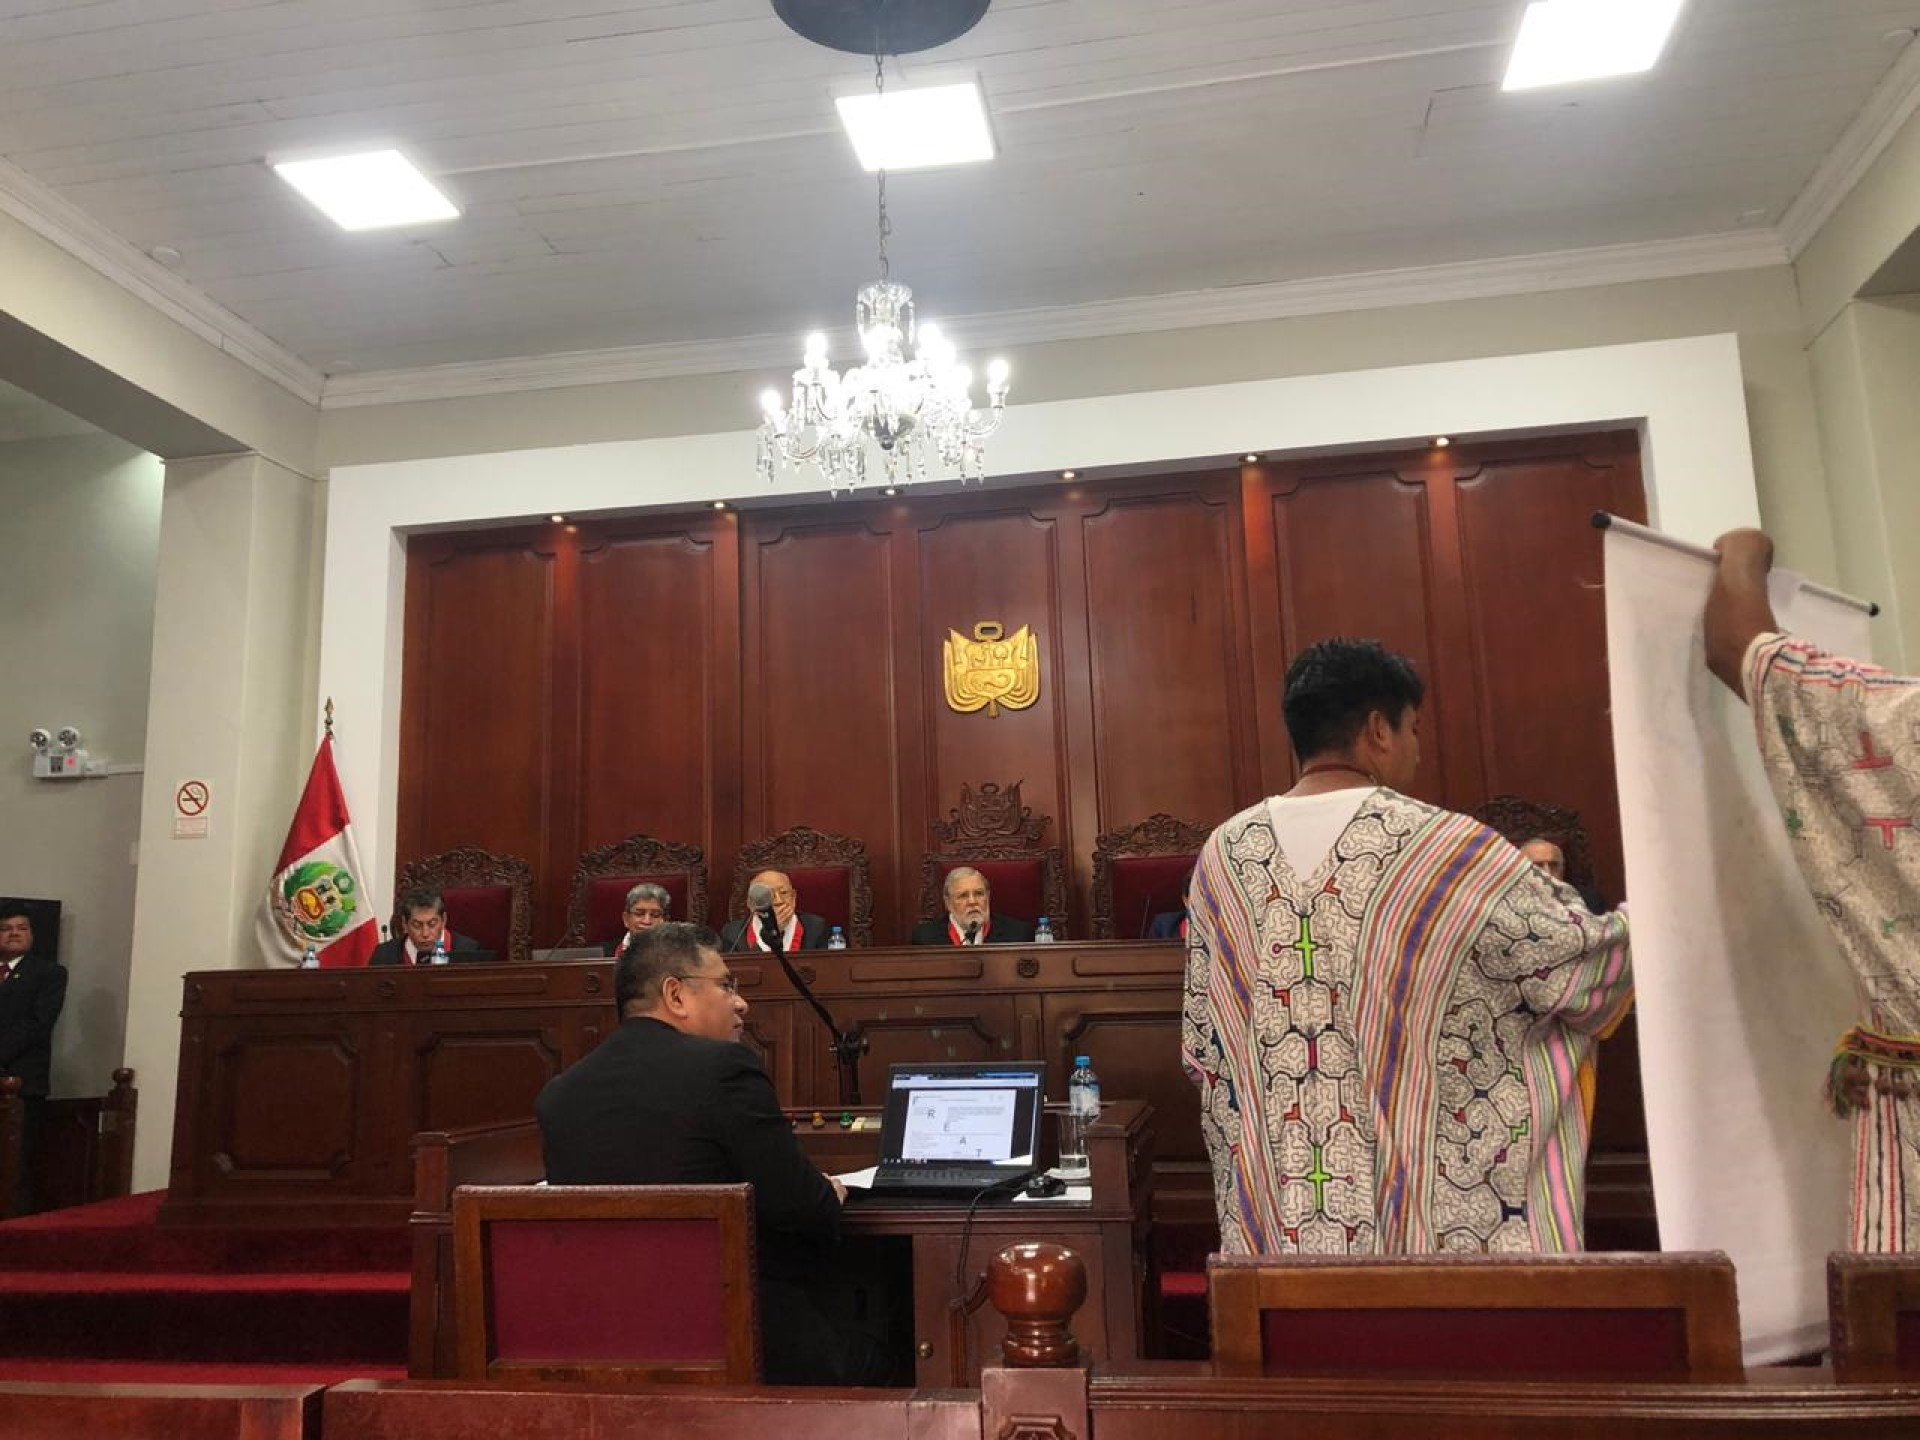 In September 2019, leaders from Santa Clara de Uchunya and FECONAU with legal support from IDL took their land rights struggle before Peru's highest court, the Constitutional Tribunal. Credit: FECONAU.